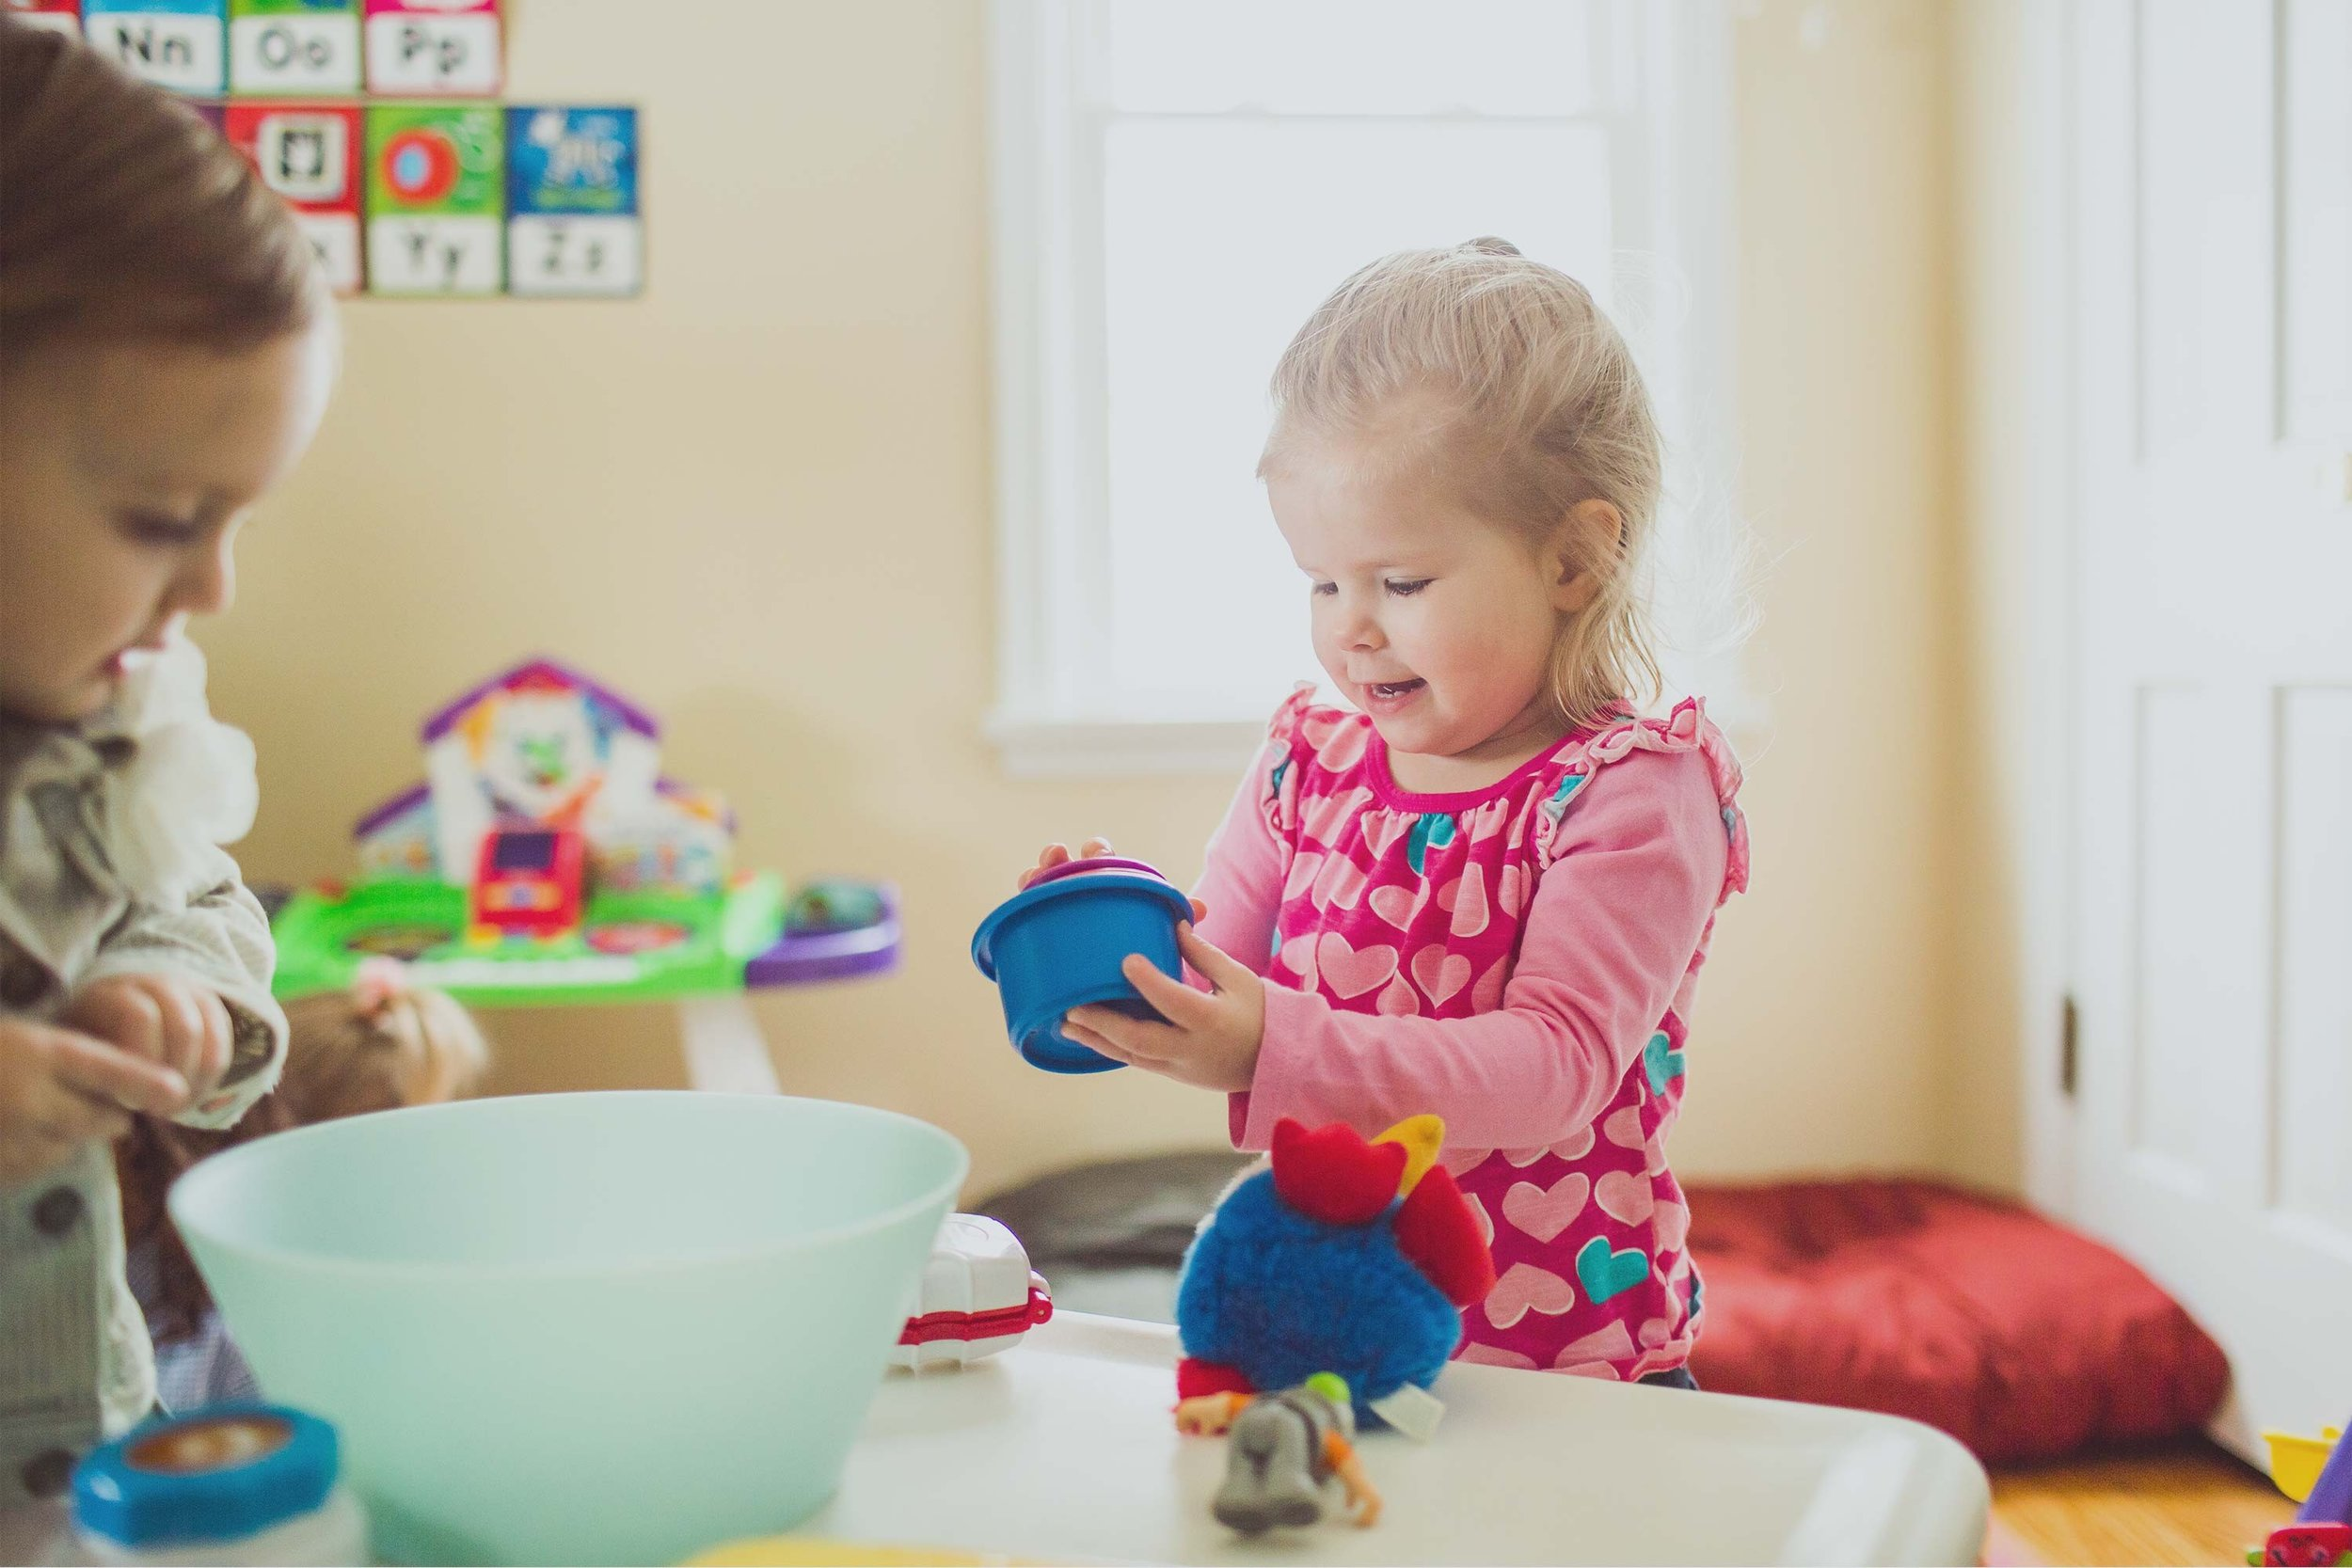 AN IN-HOME CHILD CARE COMPANY   Your child's home-away-from-home in your neighborhood and our backyards   HOW IT WORKS